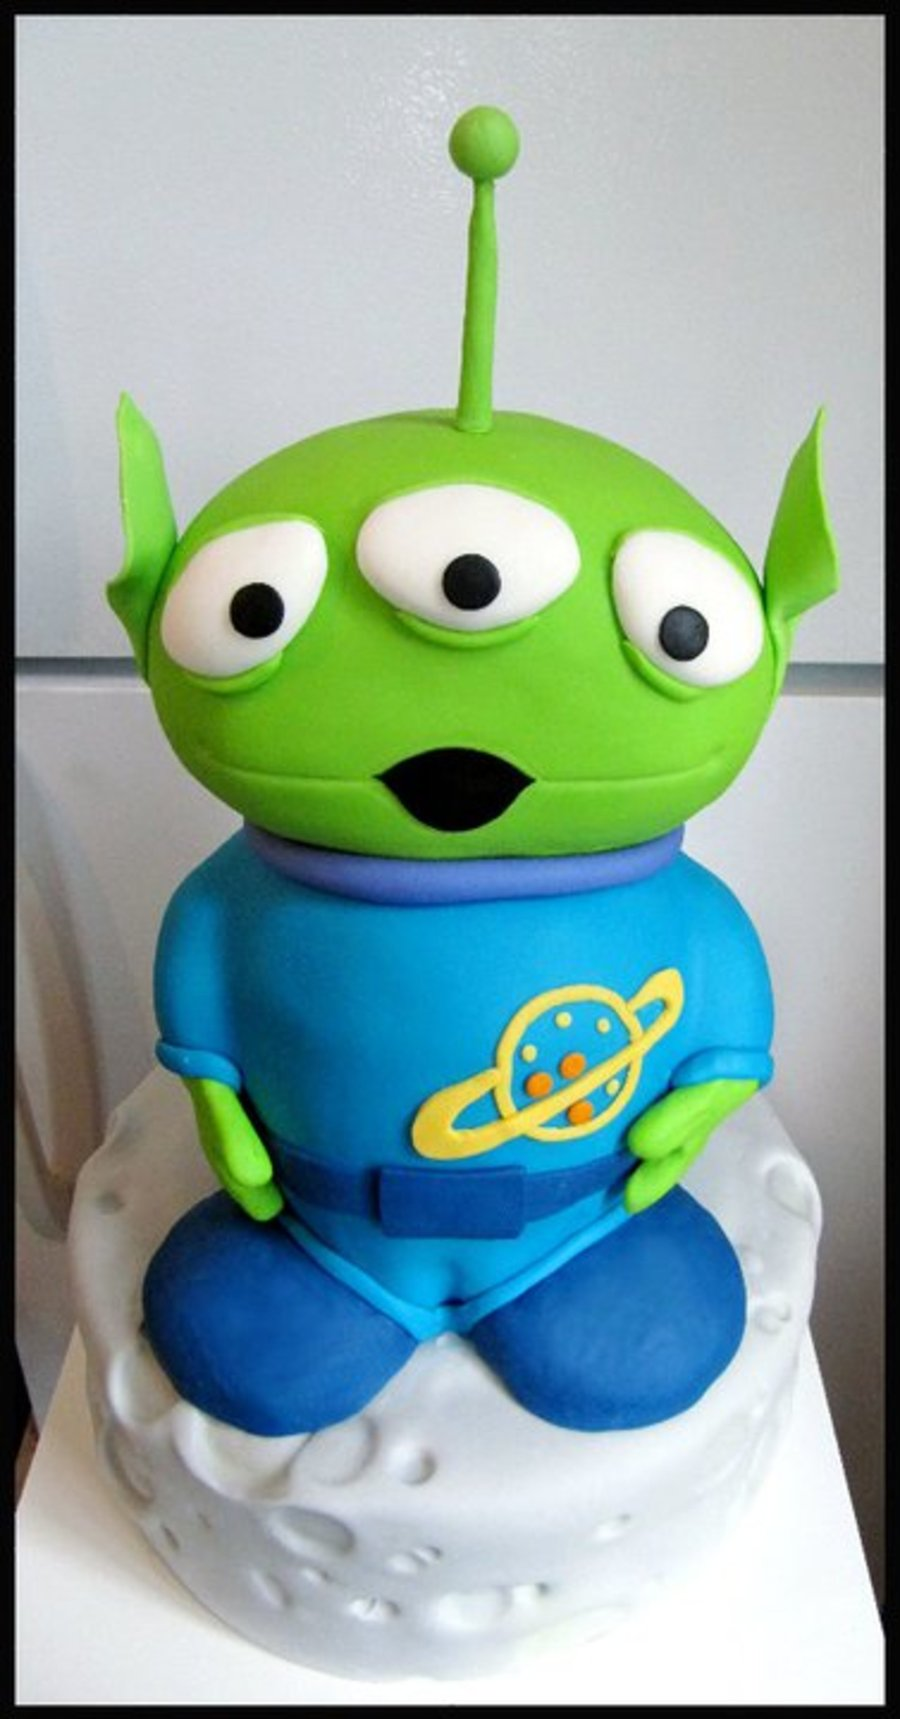 Alien From Toy Story on Cake Central